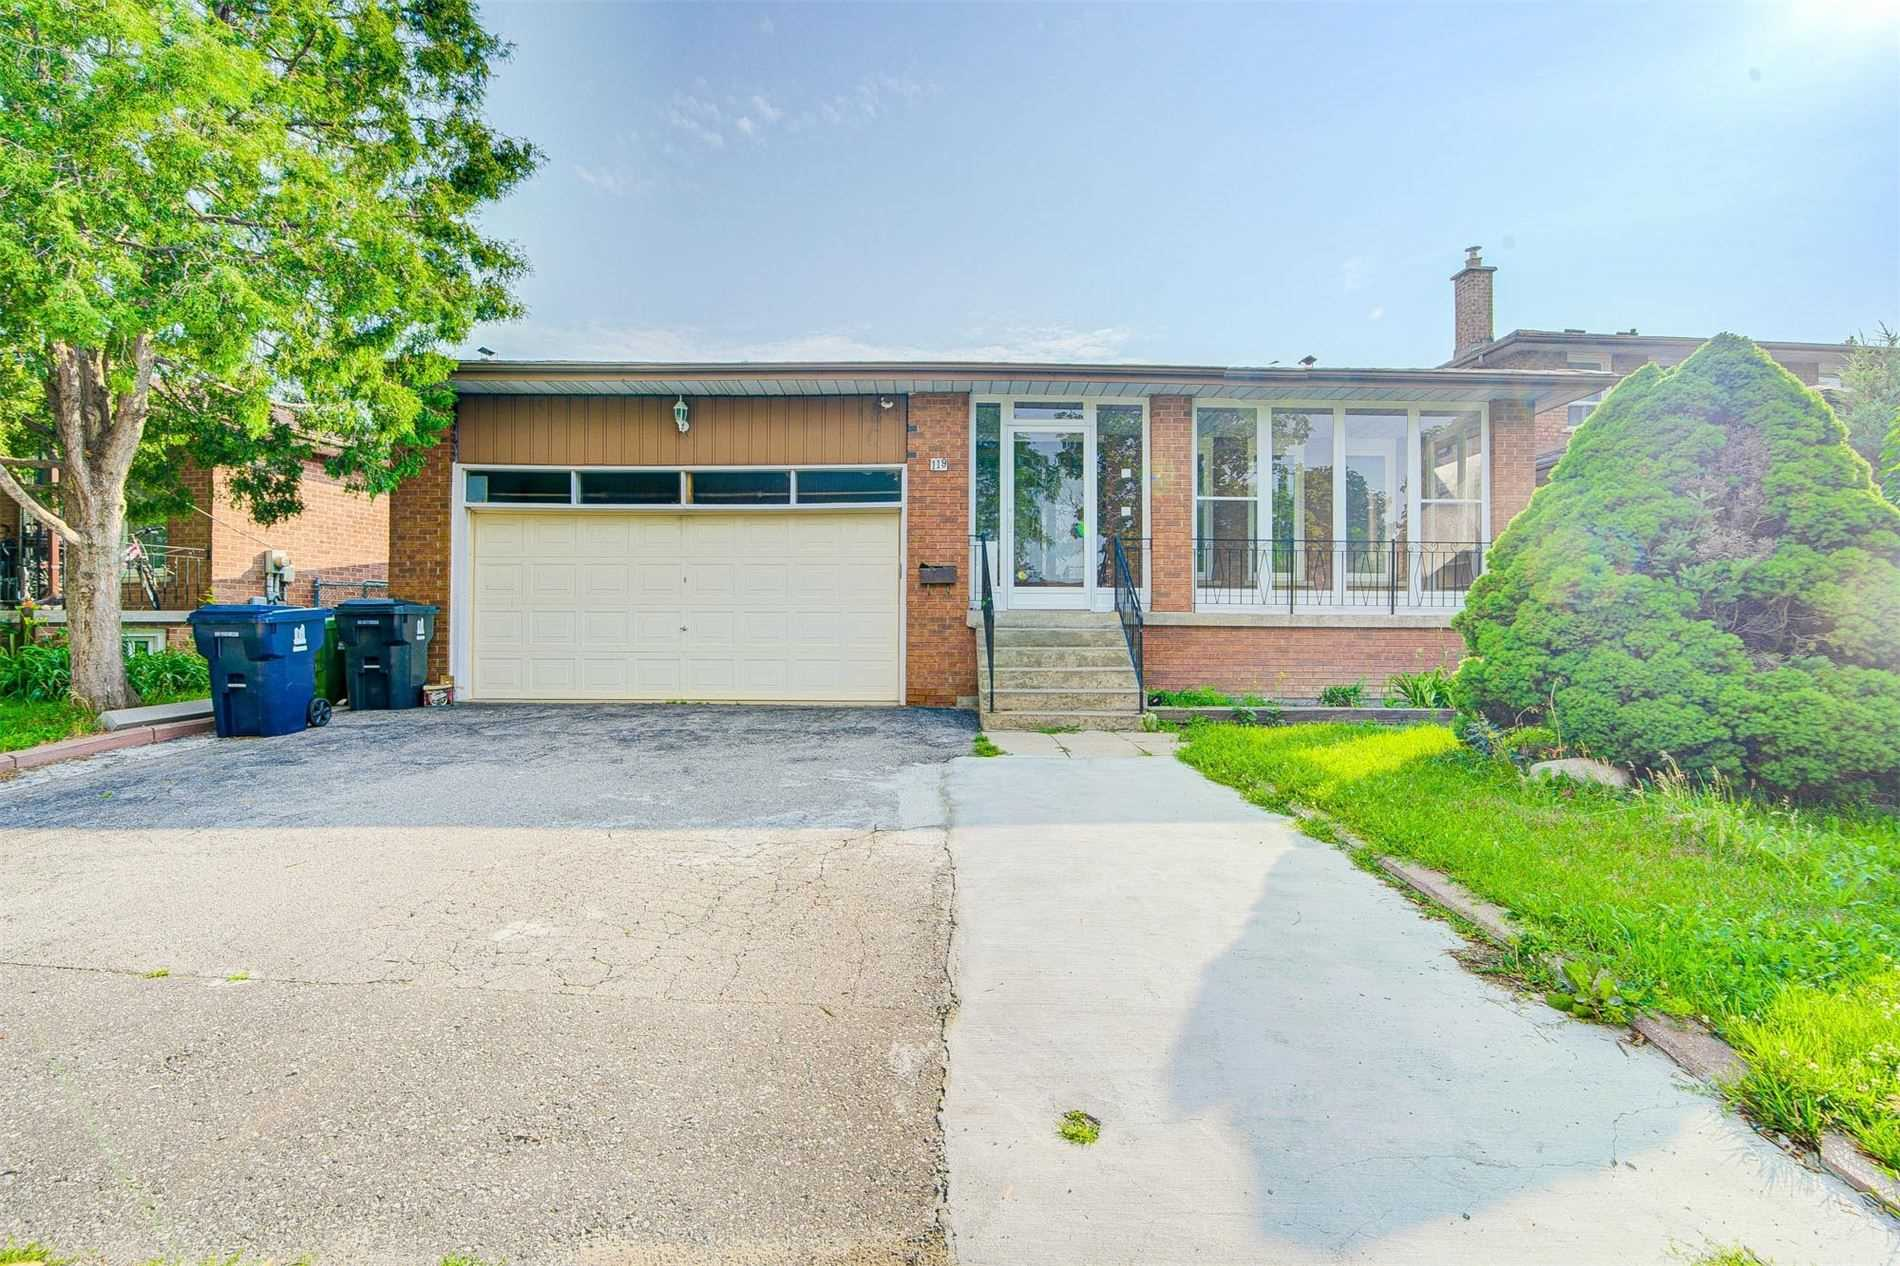 Detached house For Lease In Toronto - 119 Ambercroft Blvd, Toronto, Ontario, Canada M1W3K8 , 2 Bedrooms Bedrooms, ,1 BathroomBathrooms,Detached,For Lease,Ambercroft